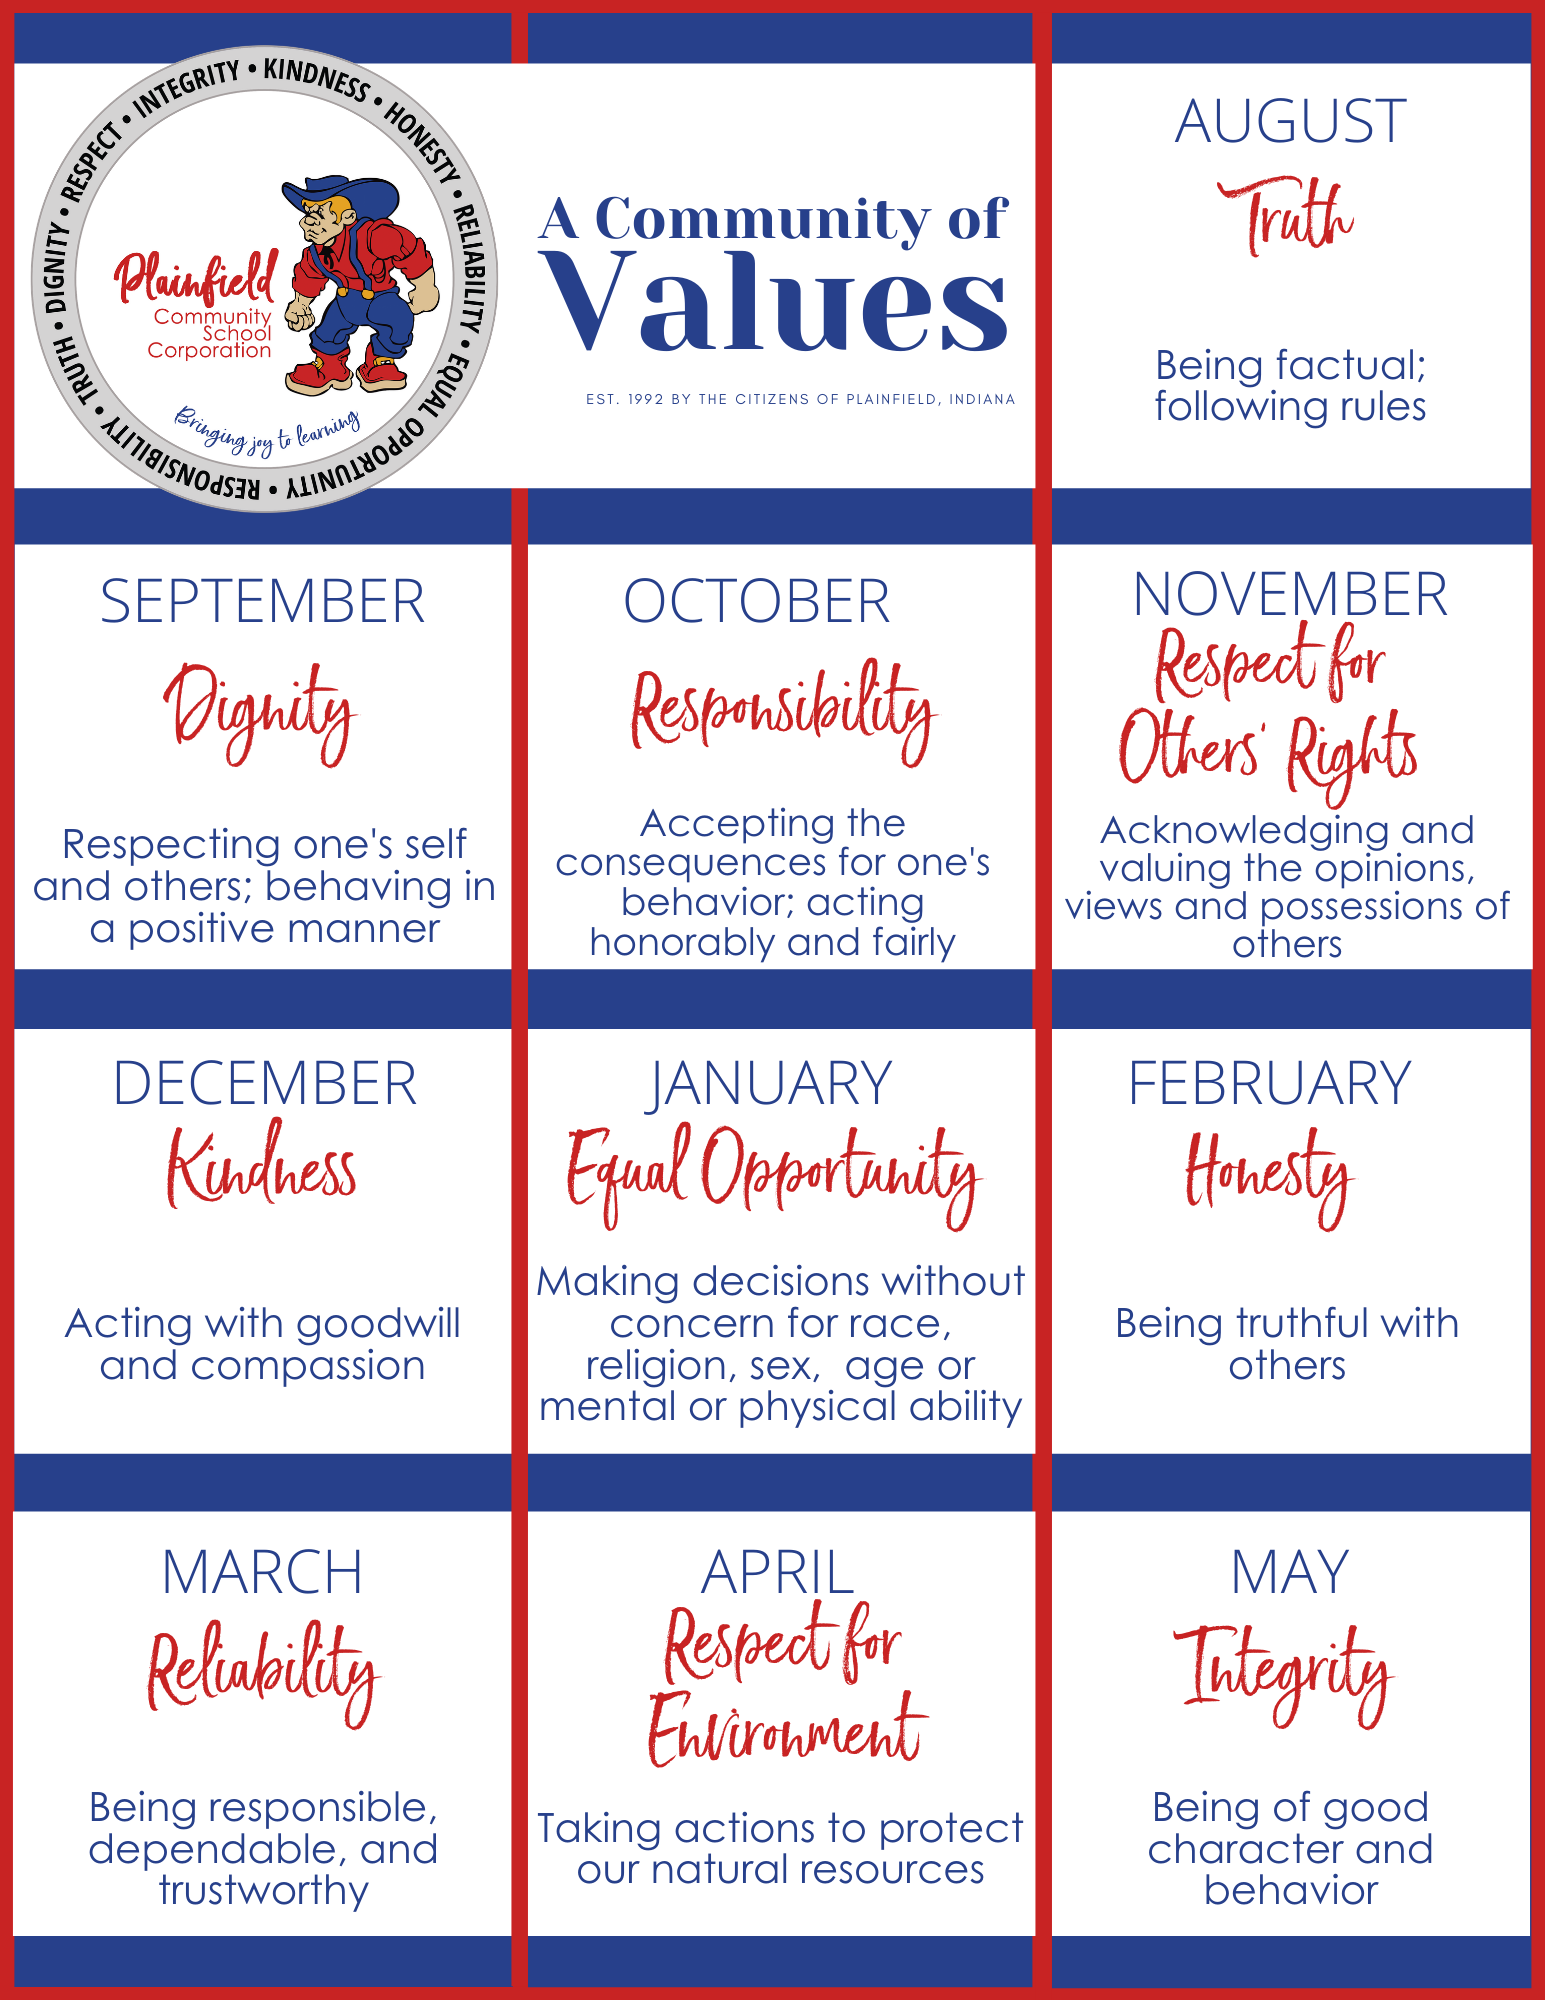 Monthly community values for Plainfield